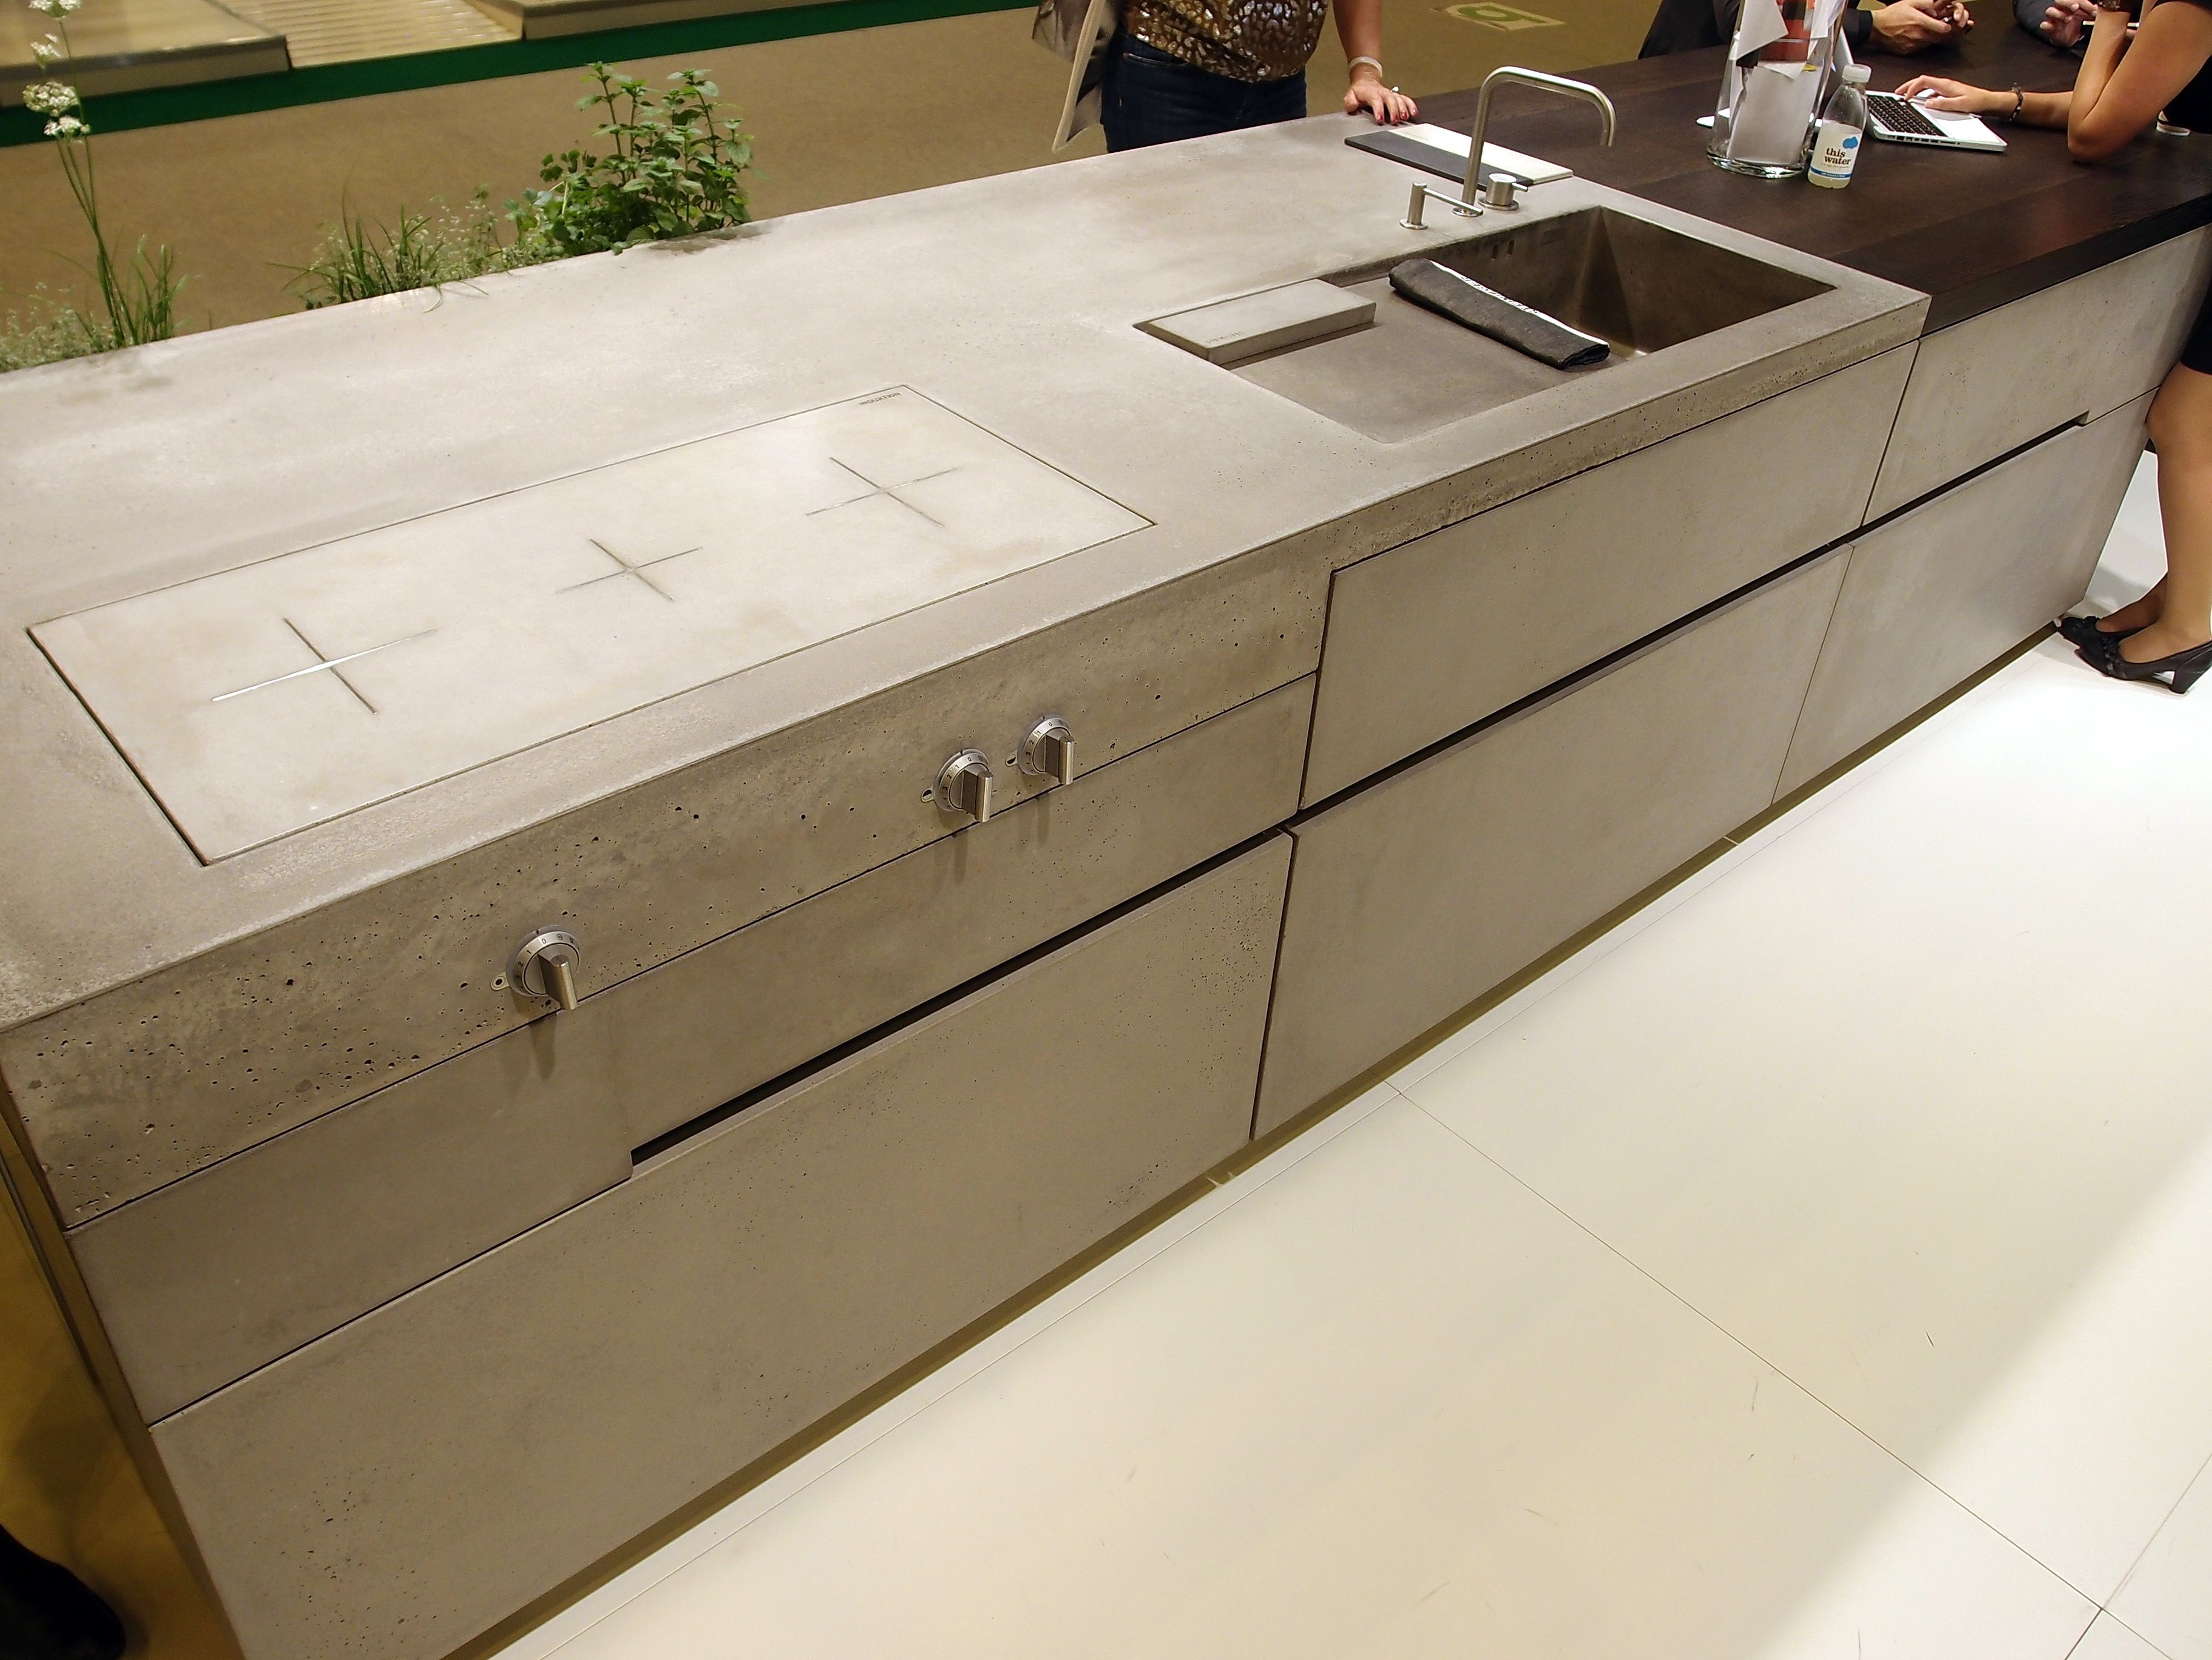 Cool concrete kitchen by steininger with induction cooktop for Steininger kuchen